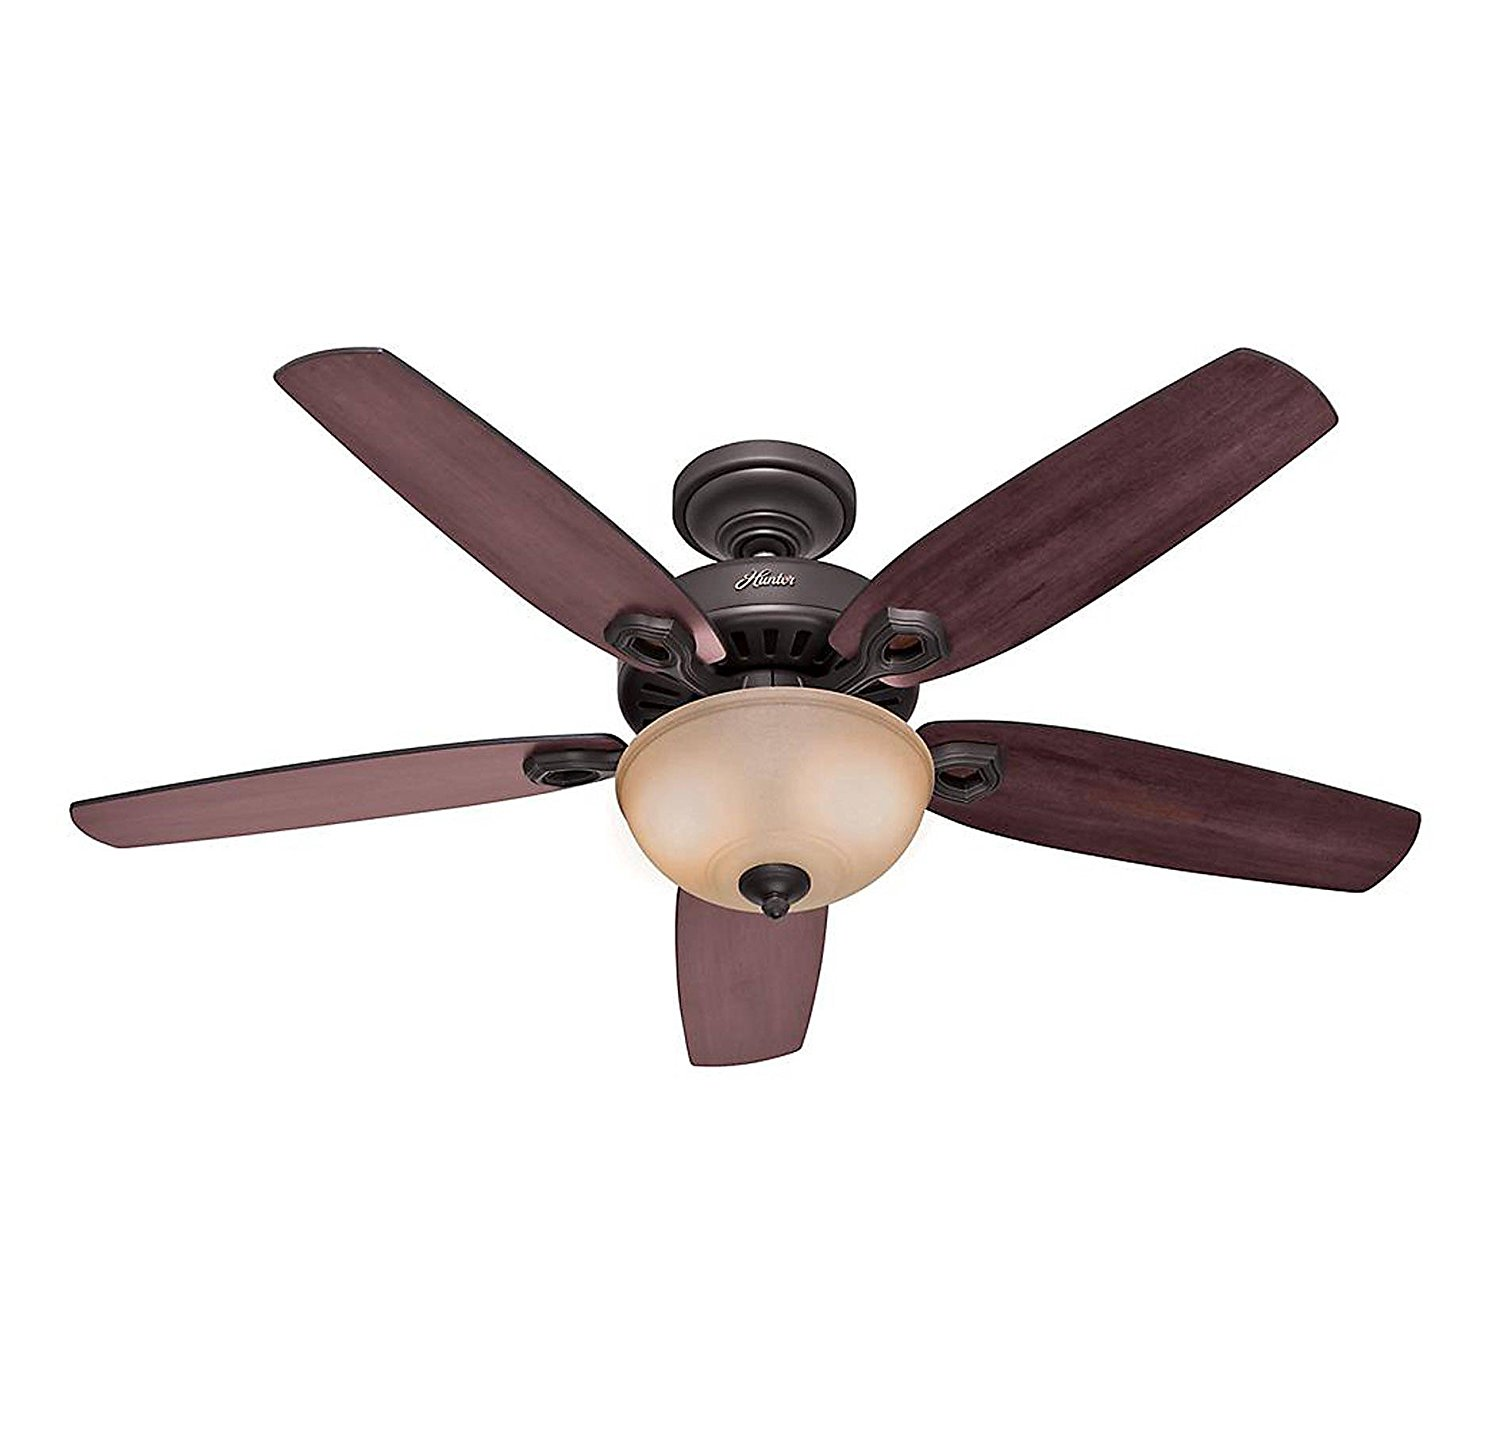 Hunter Fan Company Builder Great Room New Bronze Ceiling: Quiet Ceiling Fans With Lights - Decorative Design